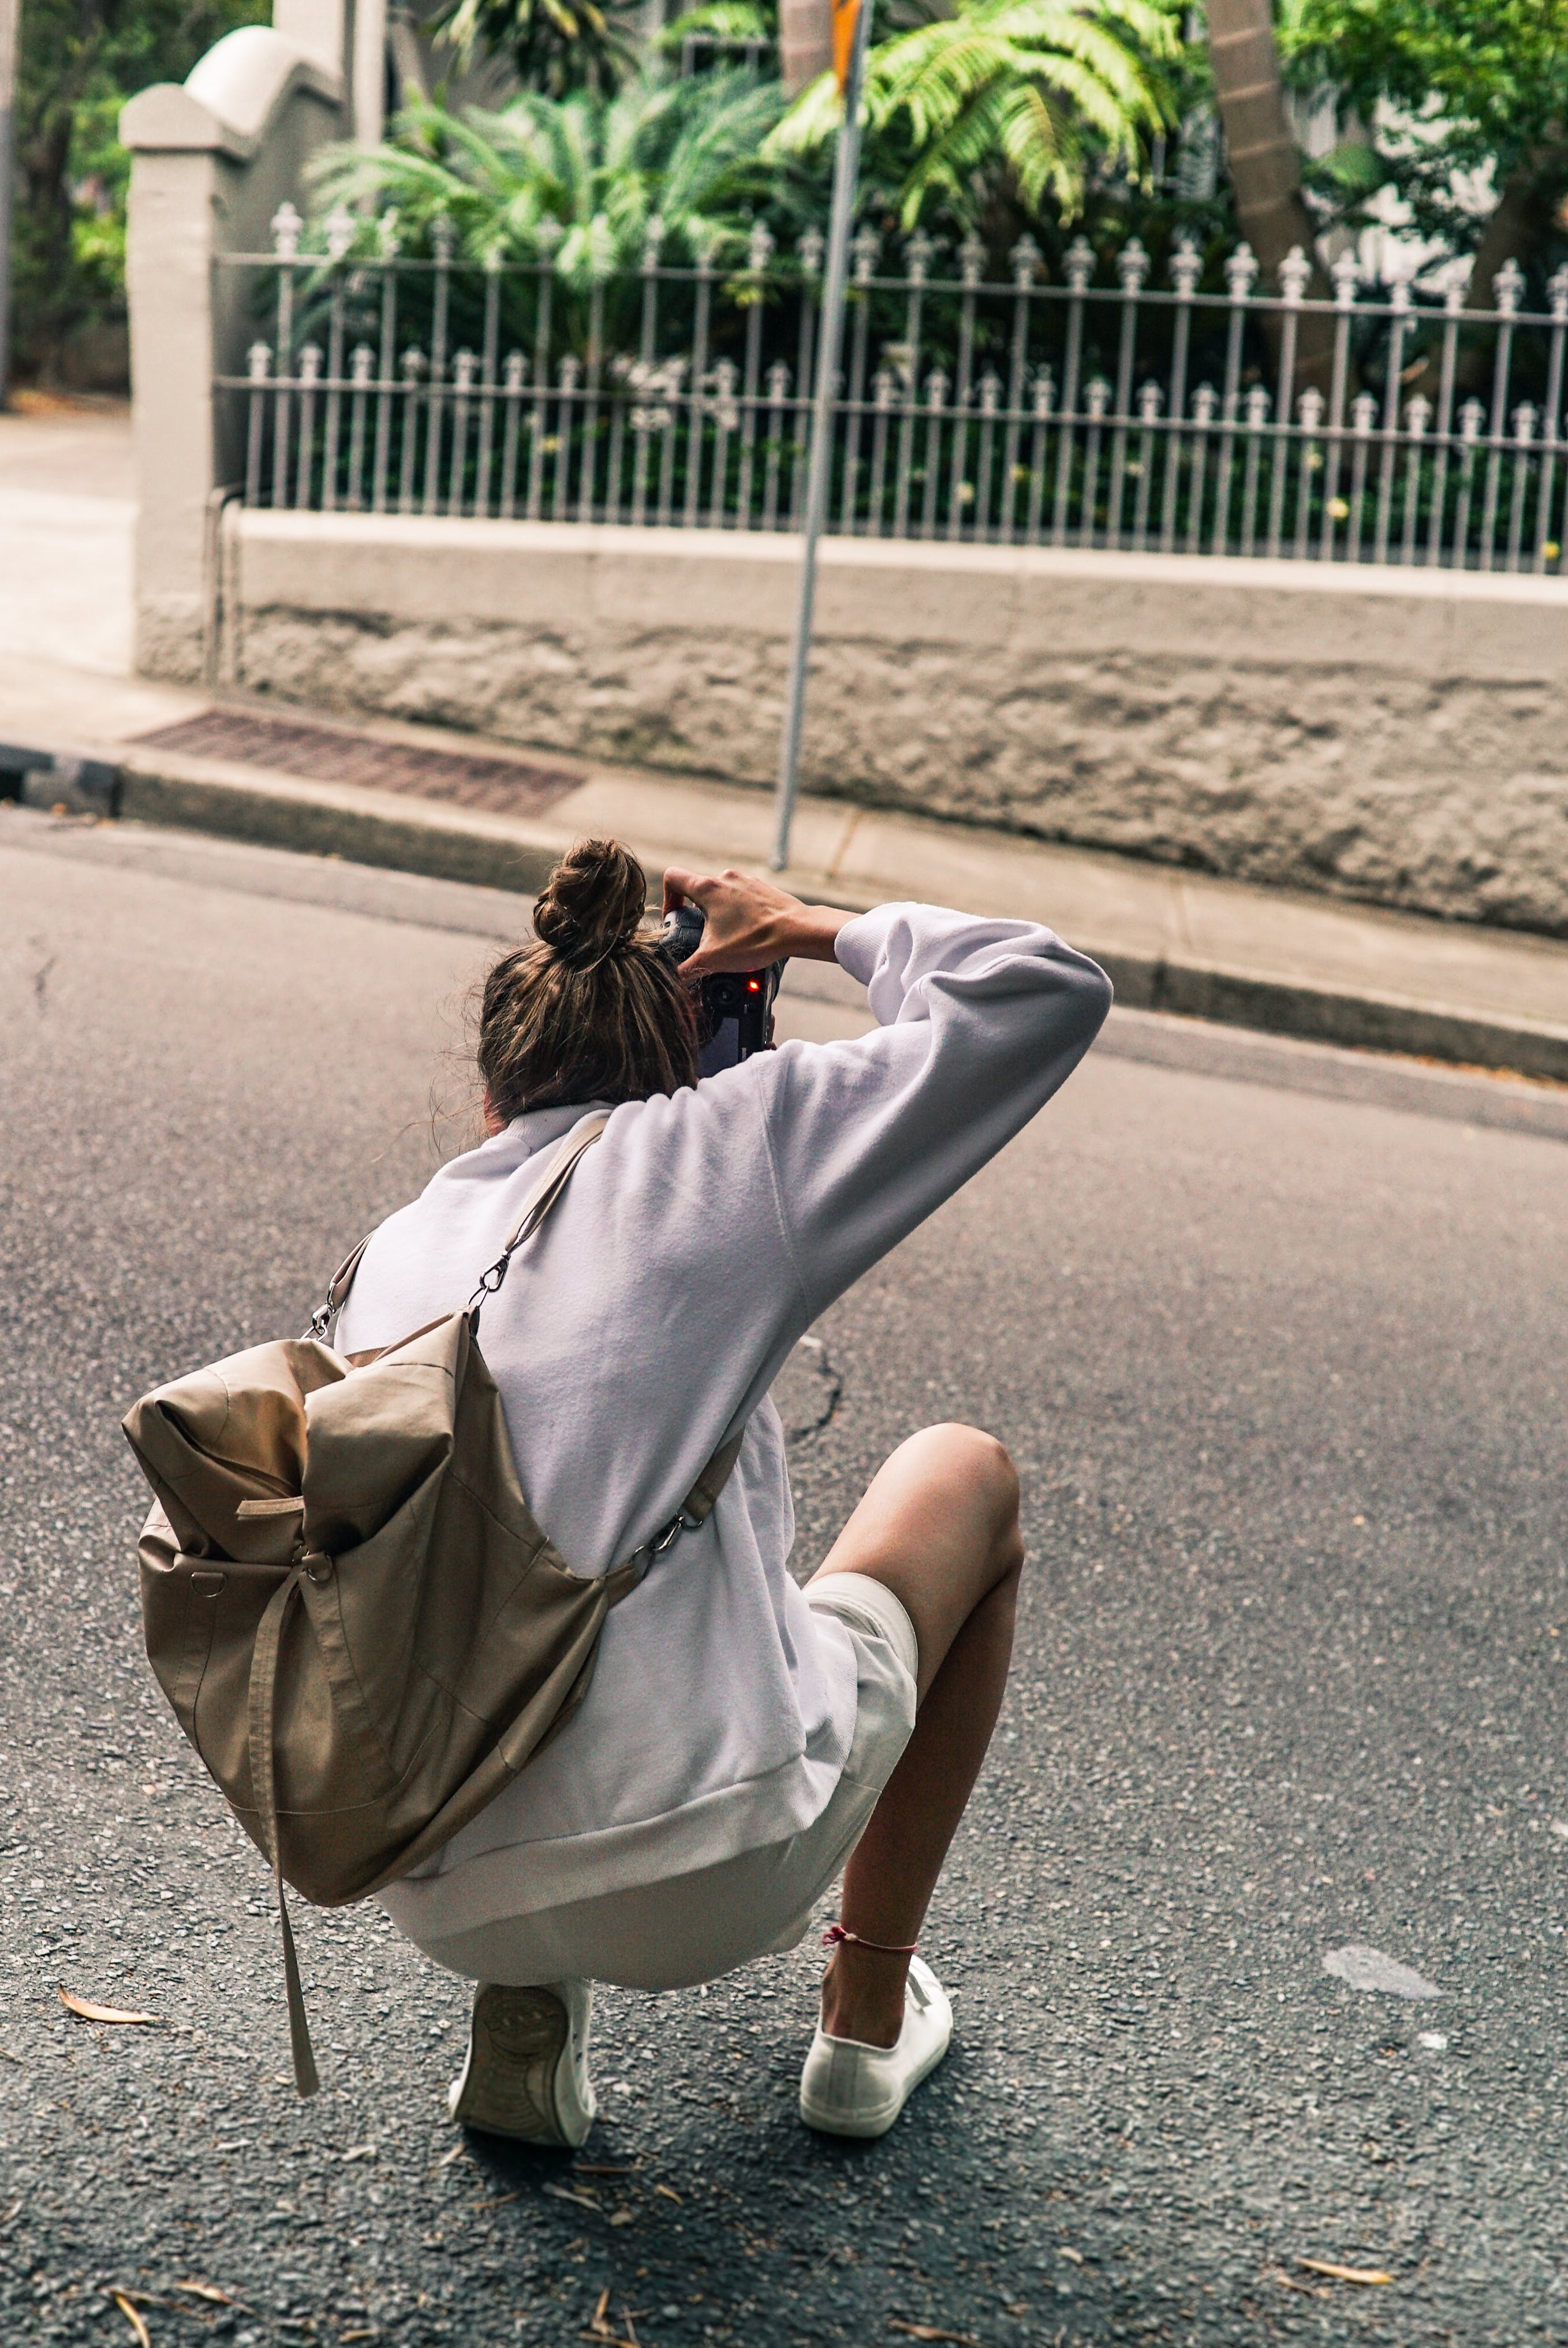 Person Kneeling on Road While Taking Picture